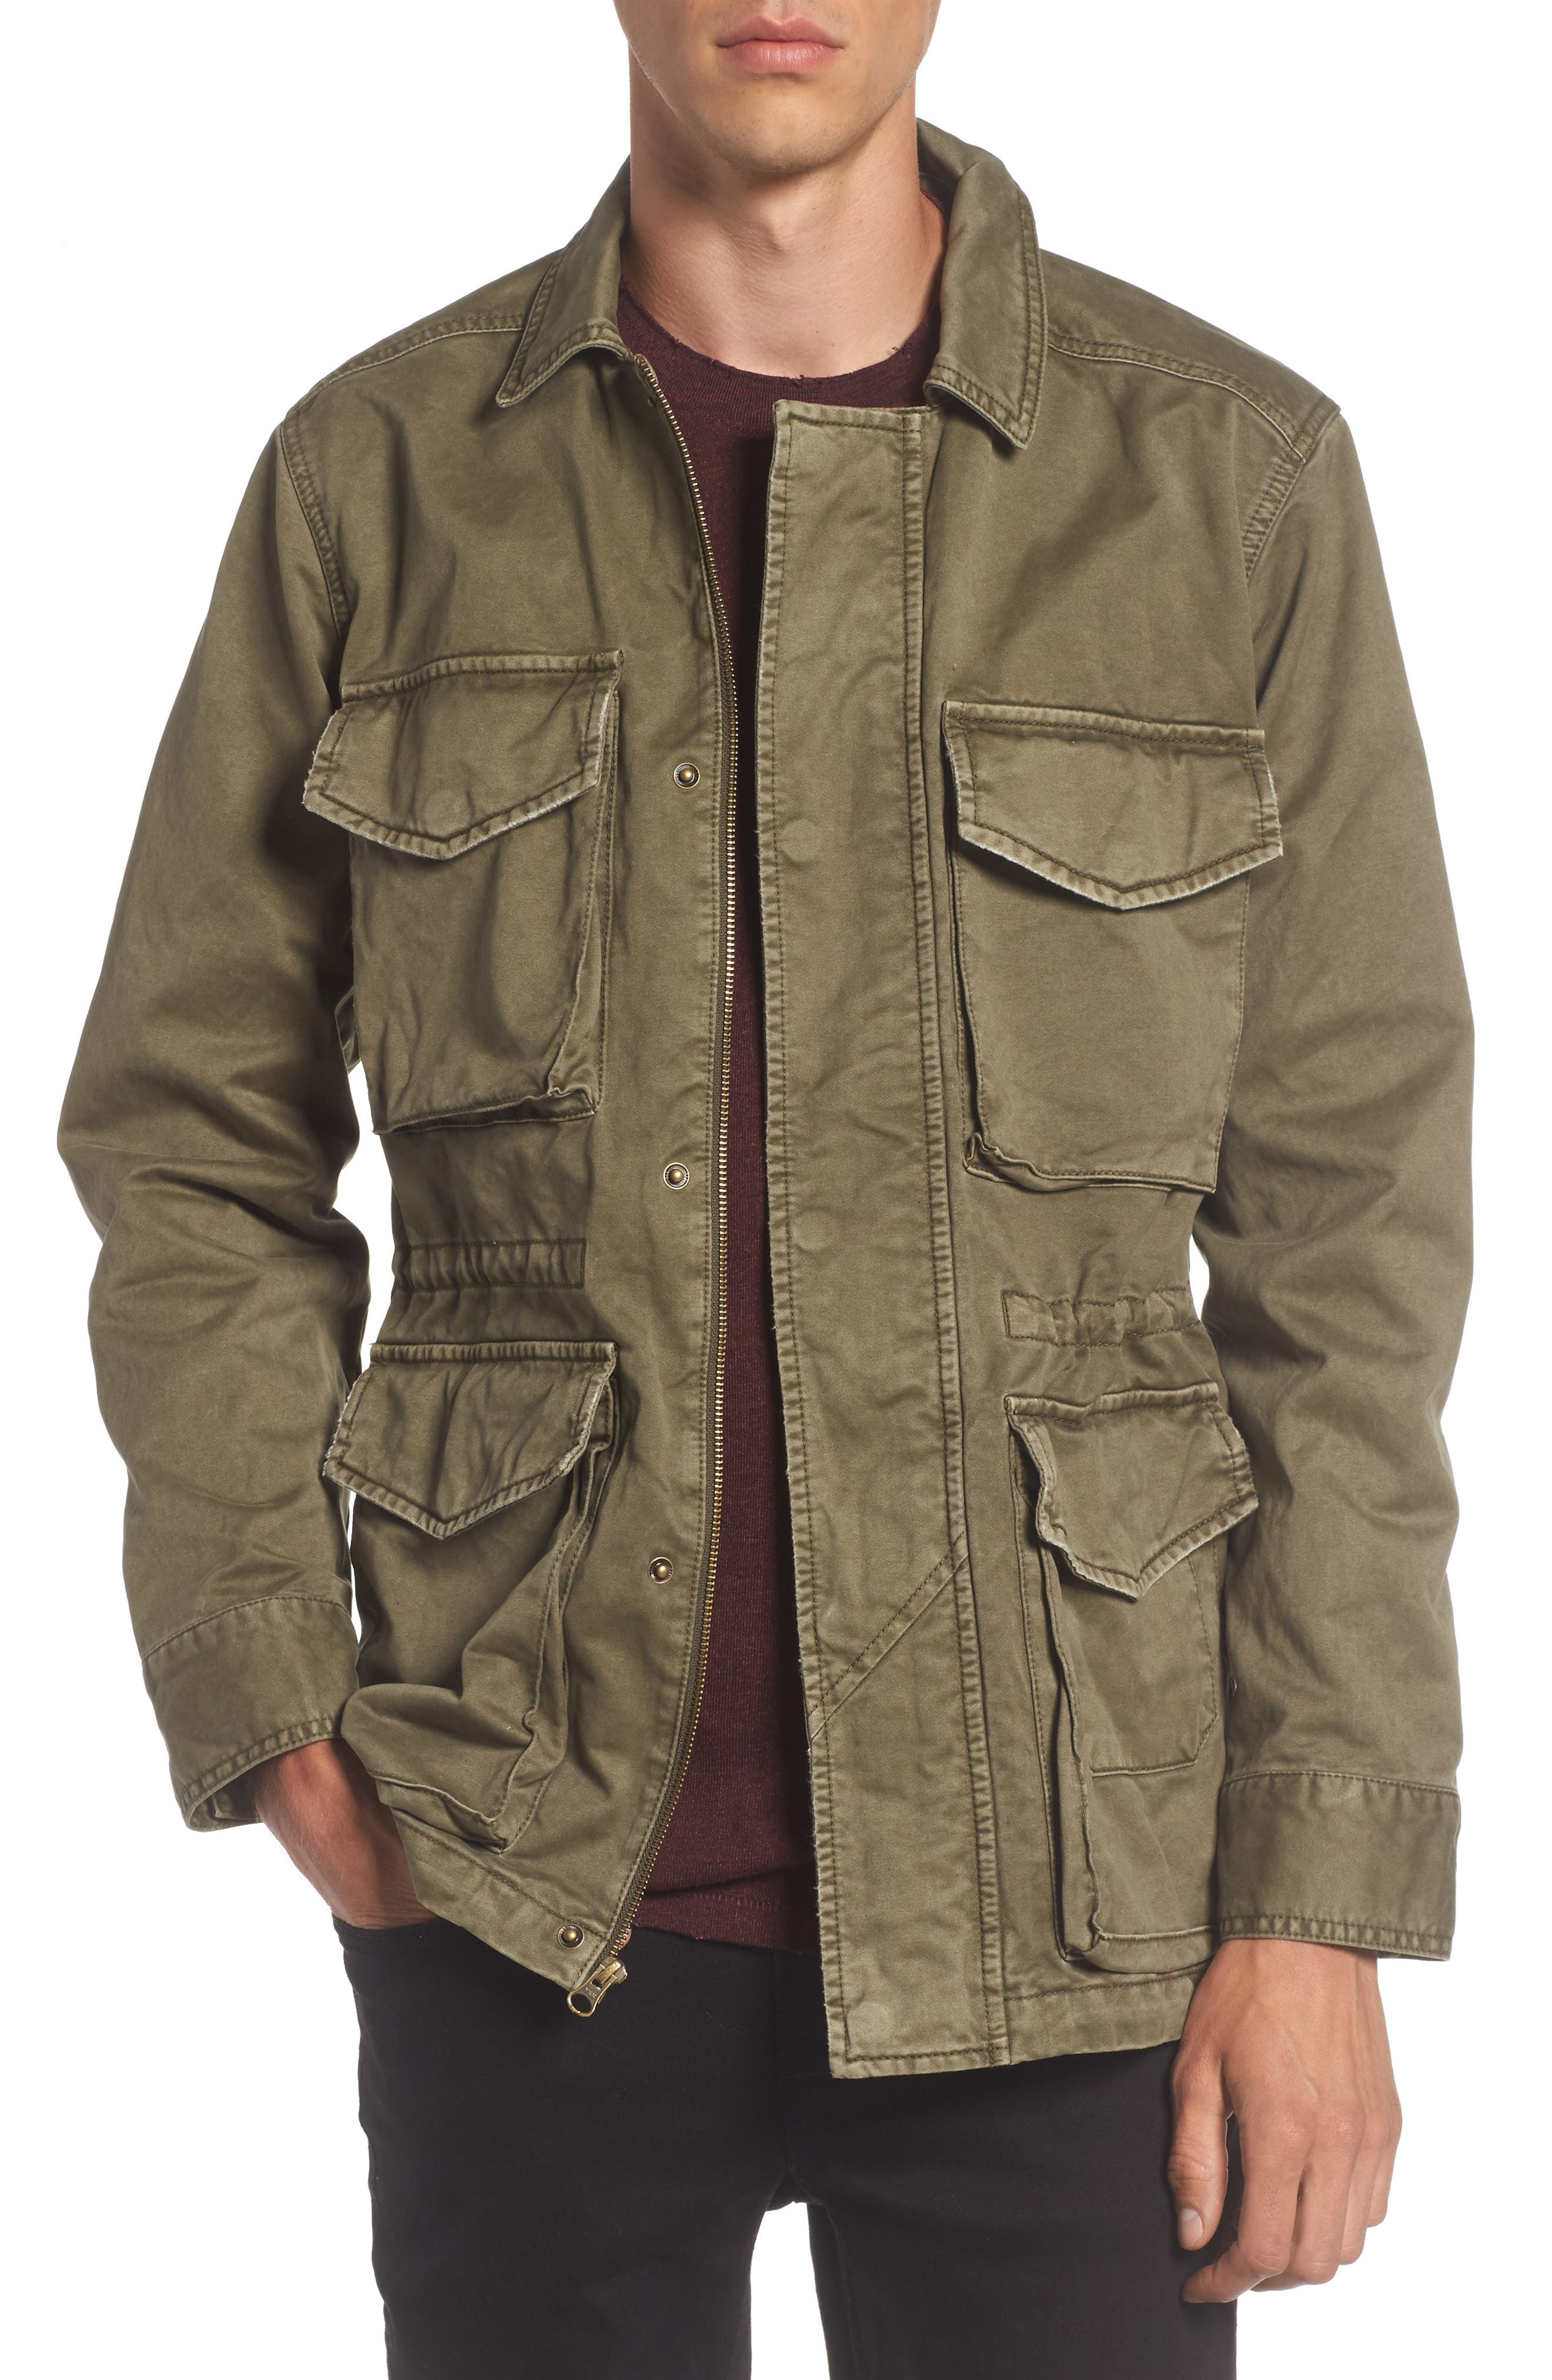 Treasure & Bond Waxed Cotton Field Jacket